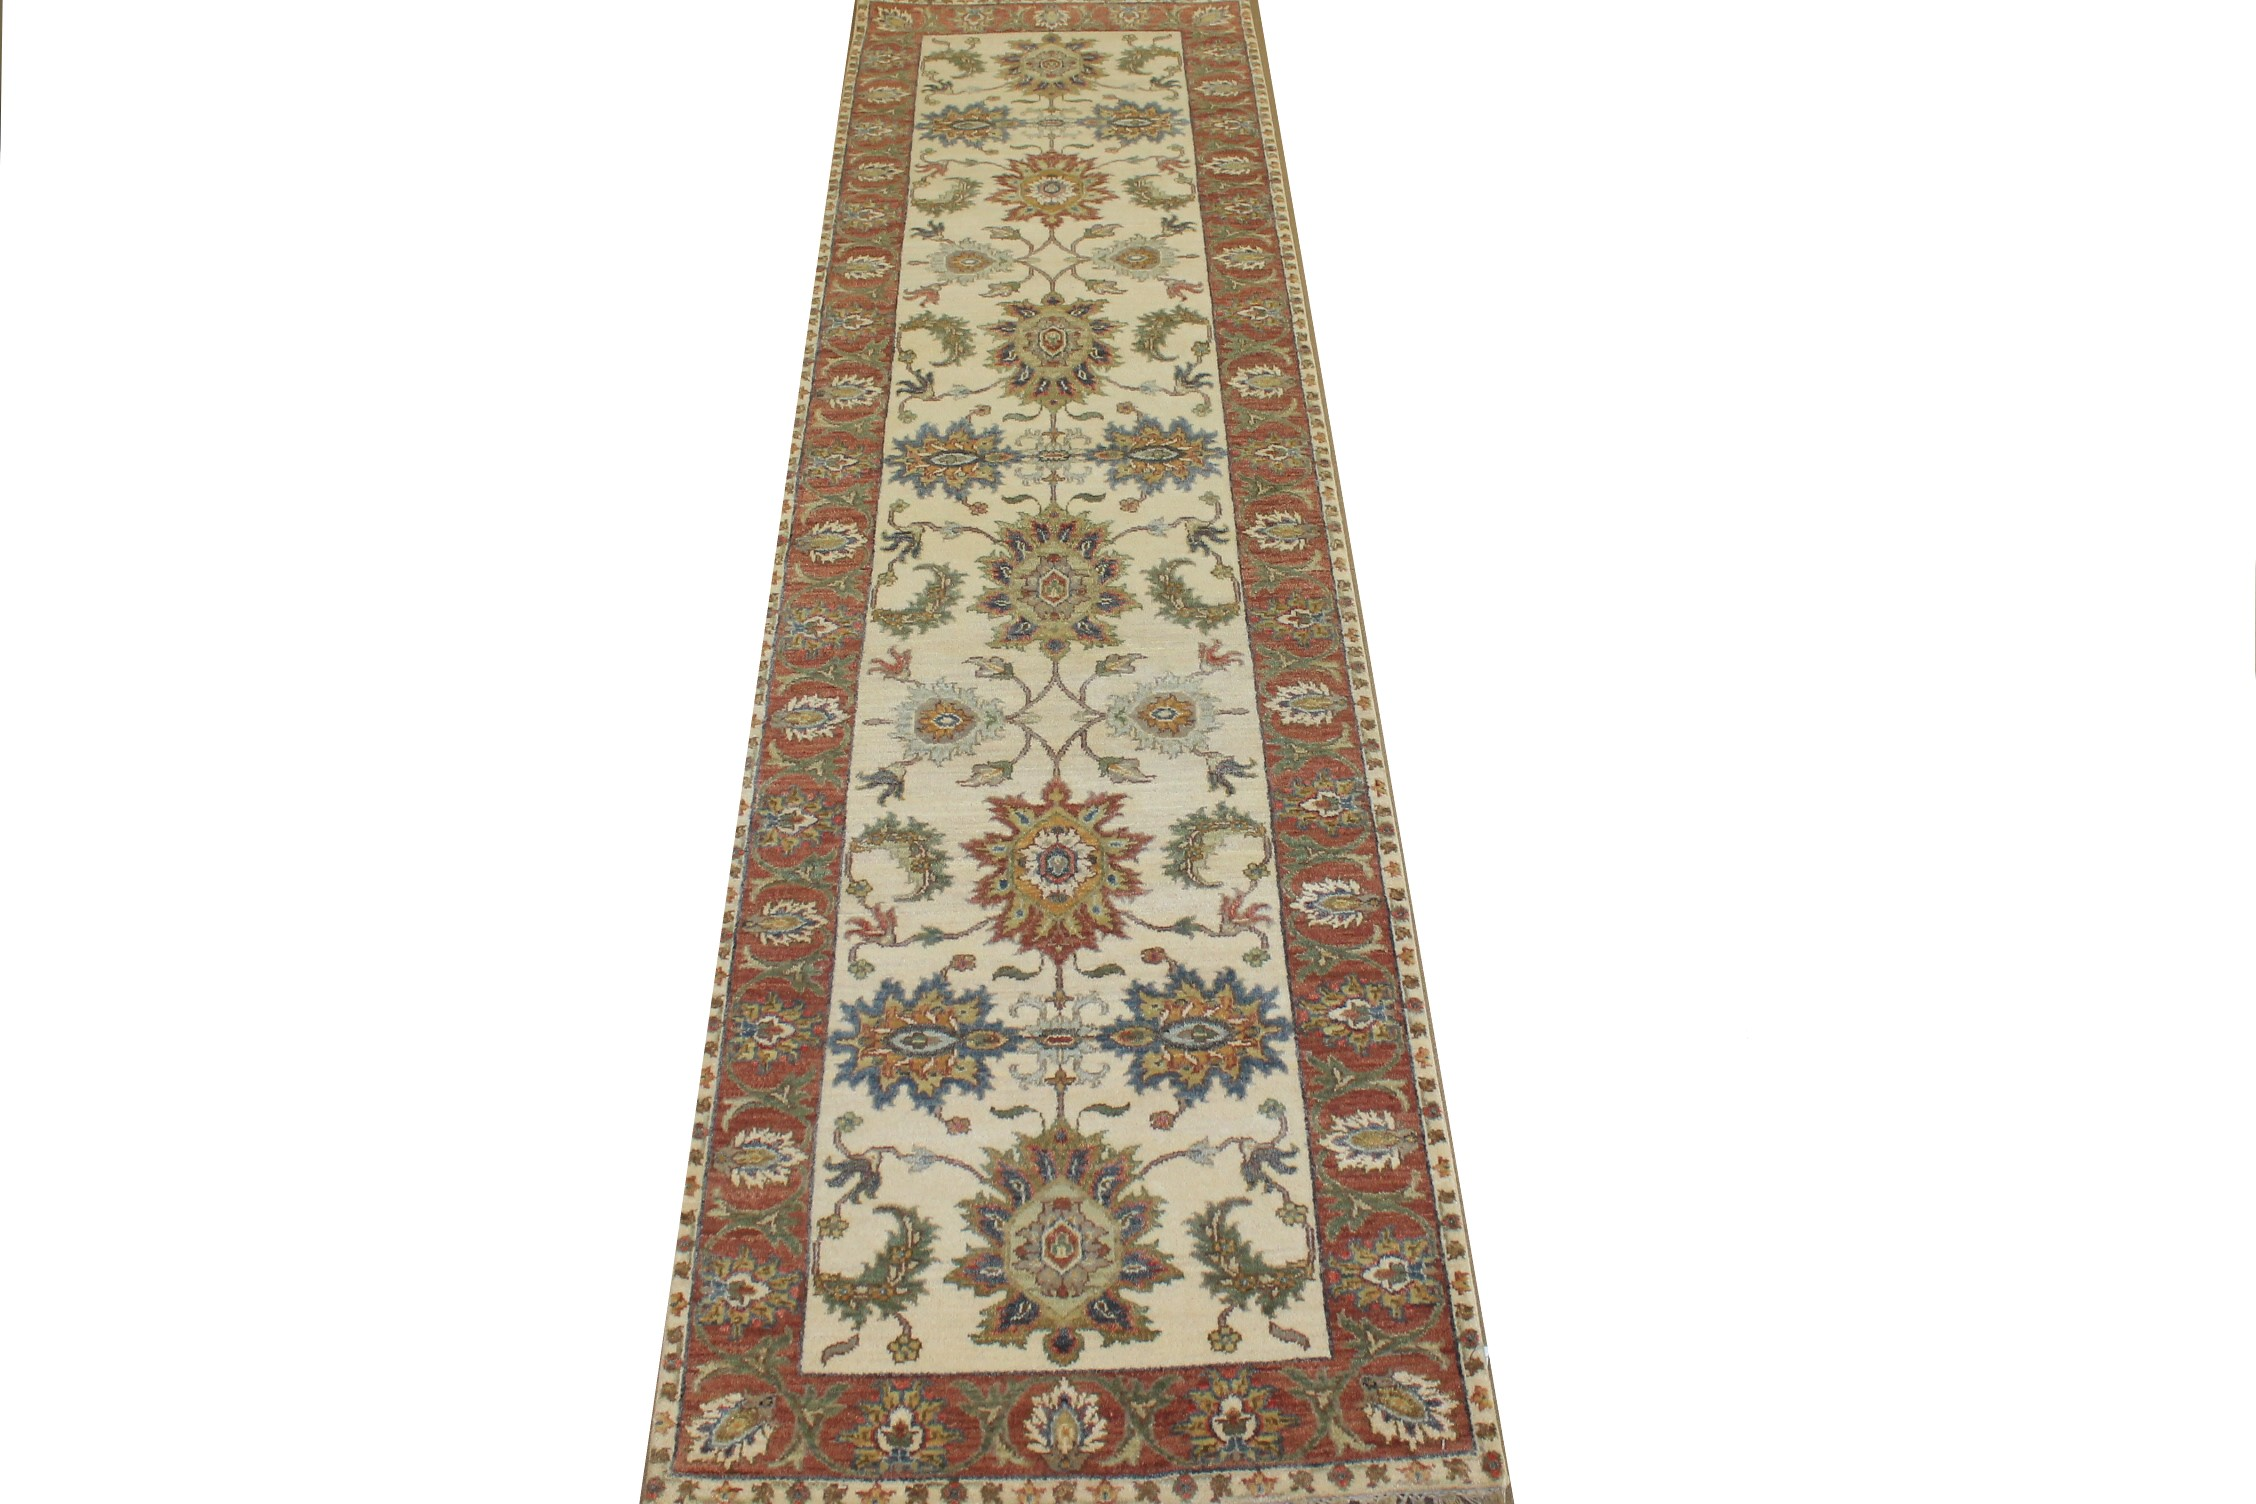 10 ft. Runner Traditional Hand Knotted Wool Area Rug - MR024776